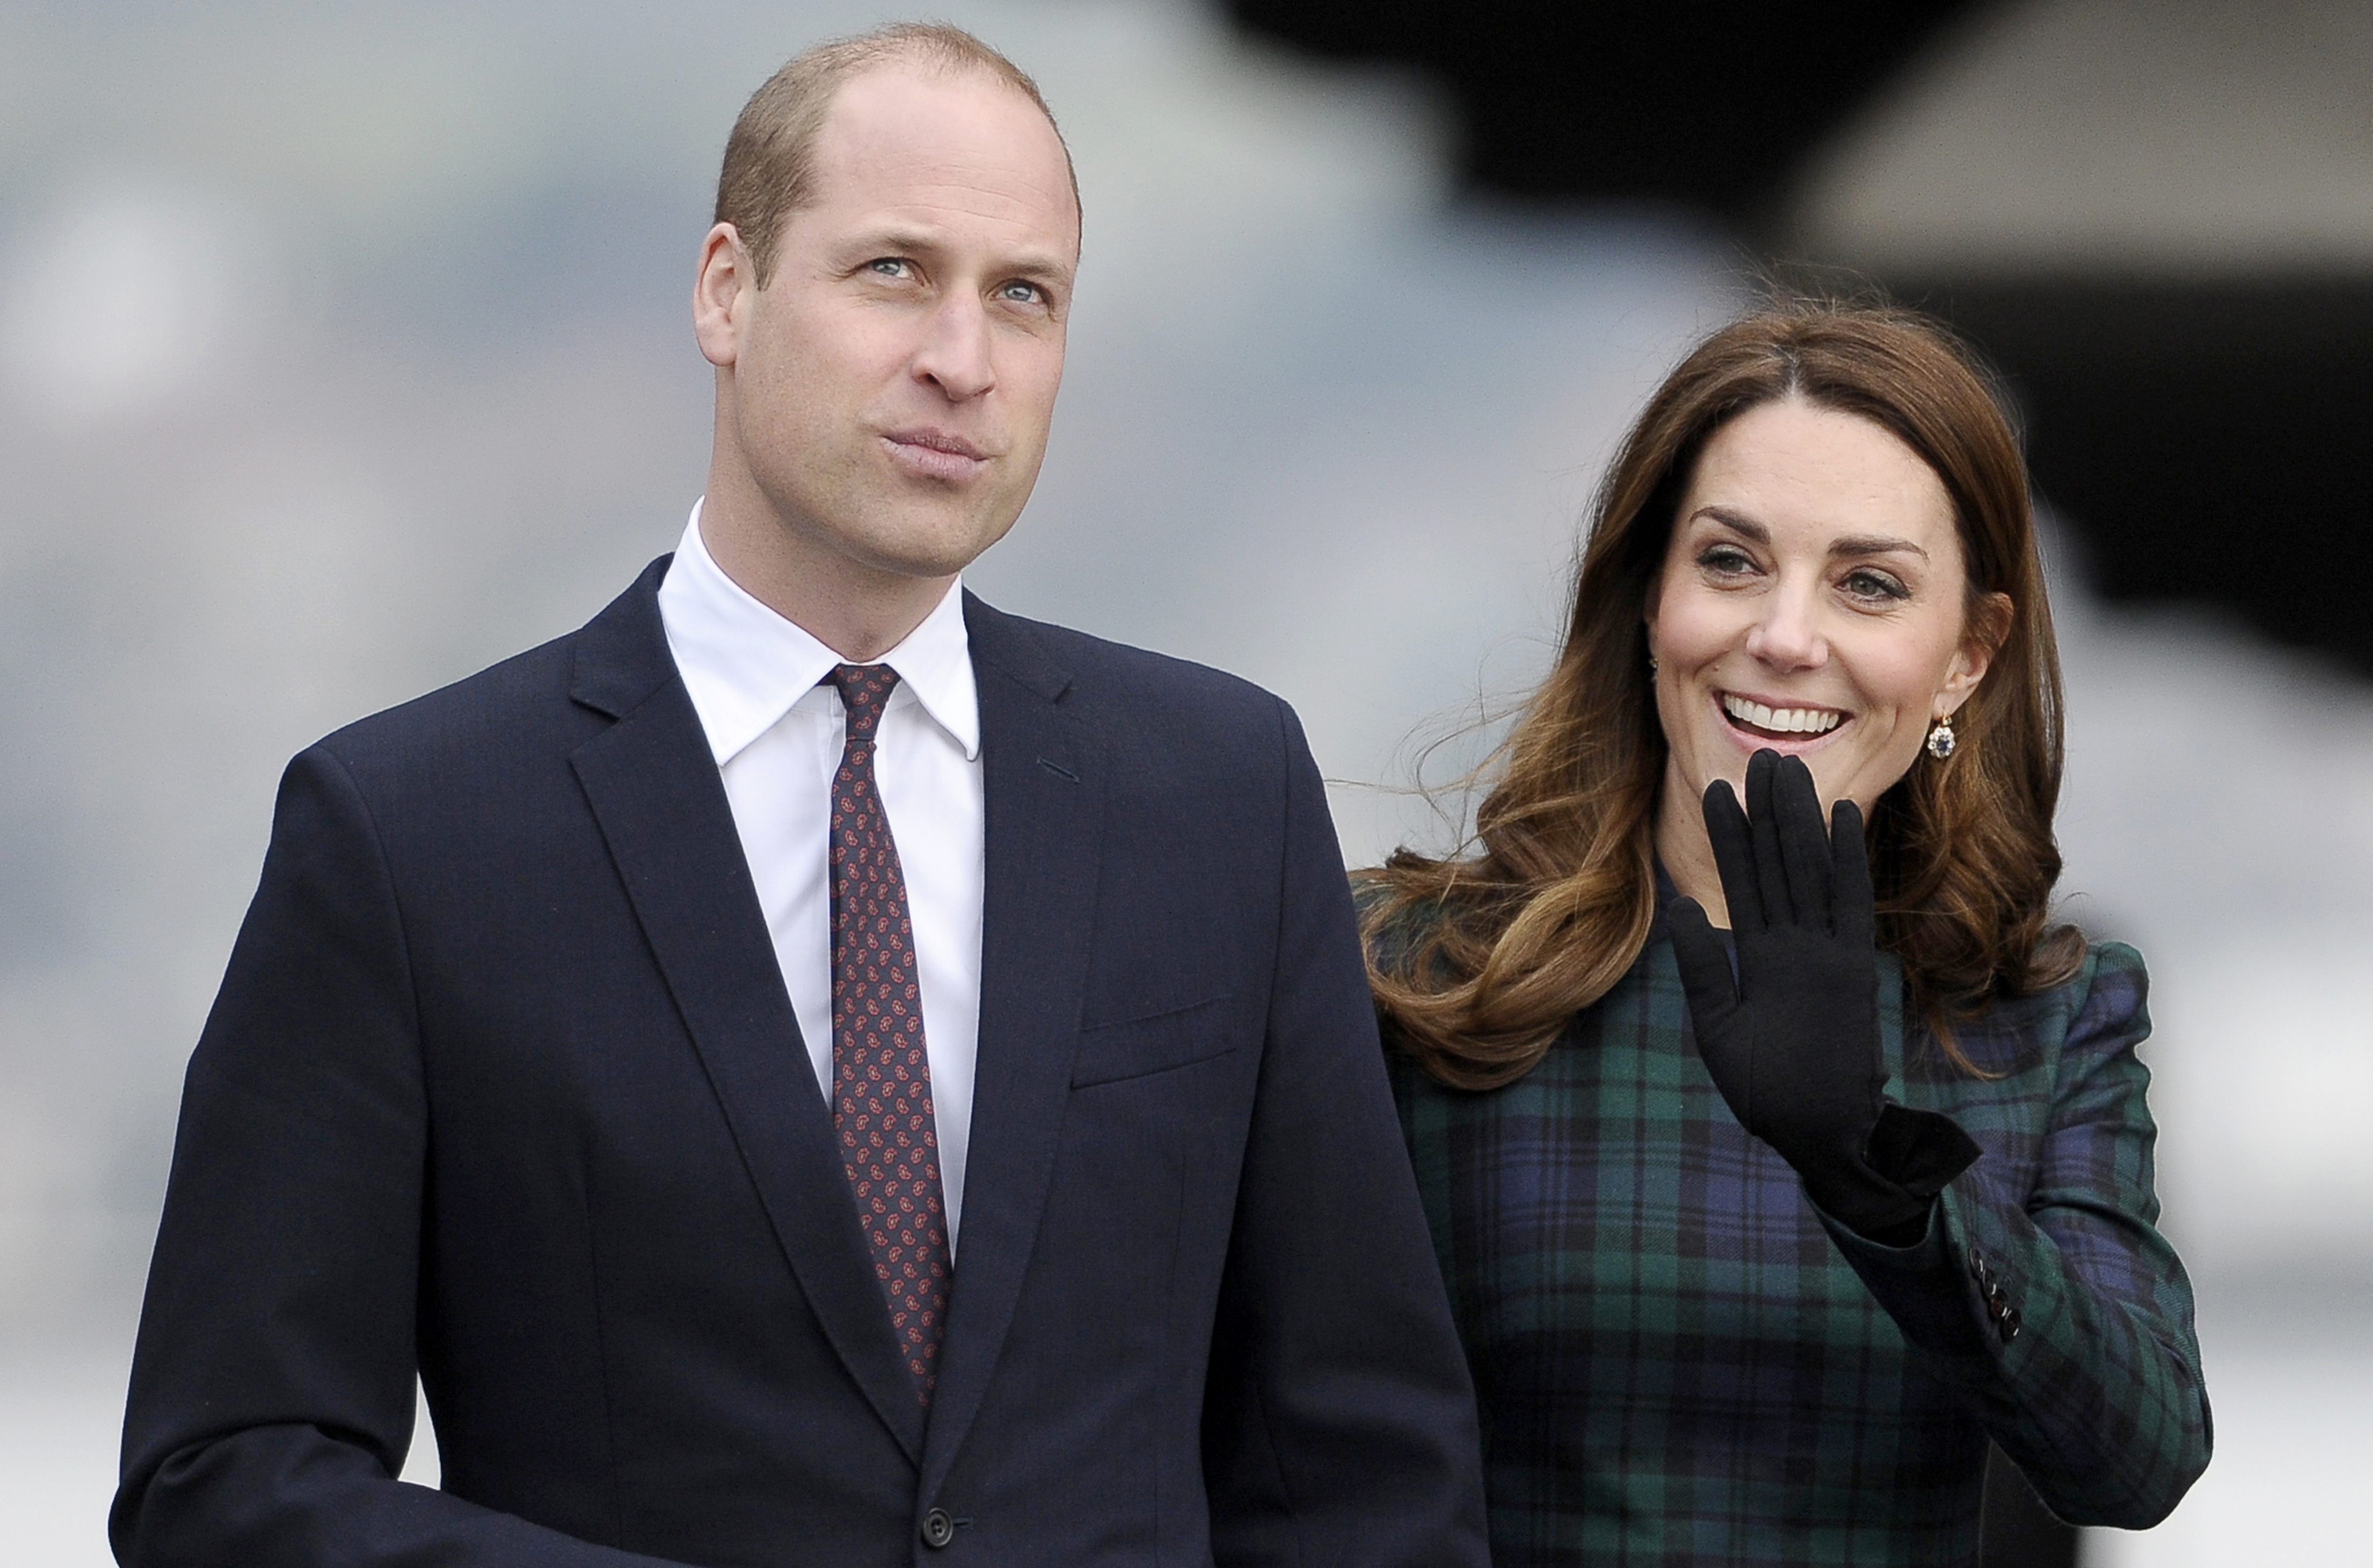 Le prince William infidèle ? La folle rumeur qui agite le Royaume-Uni